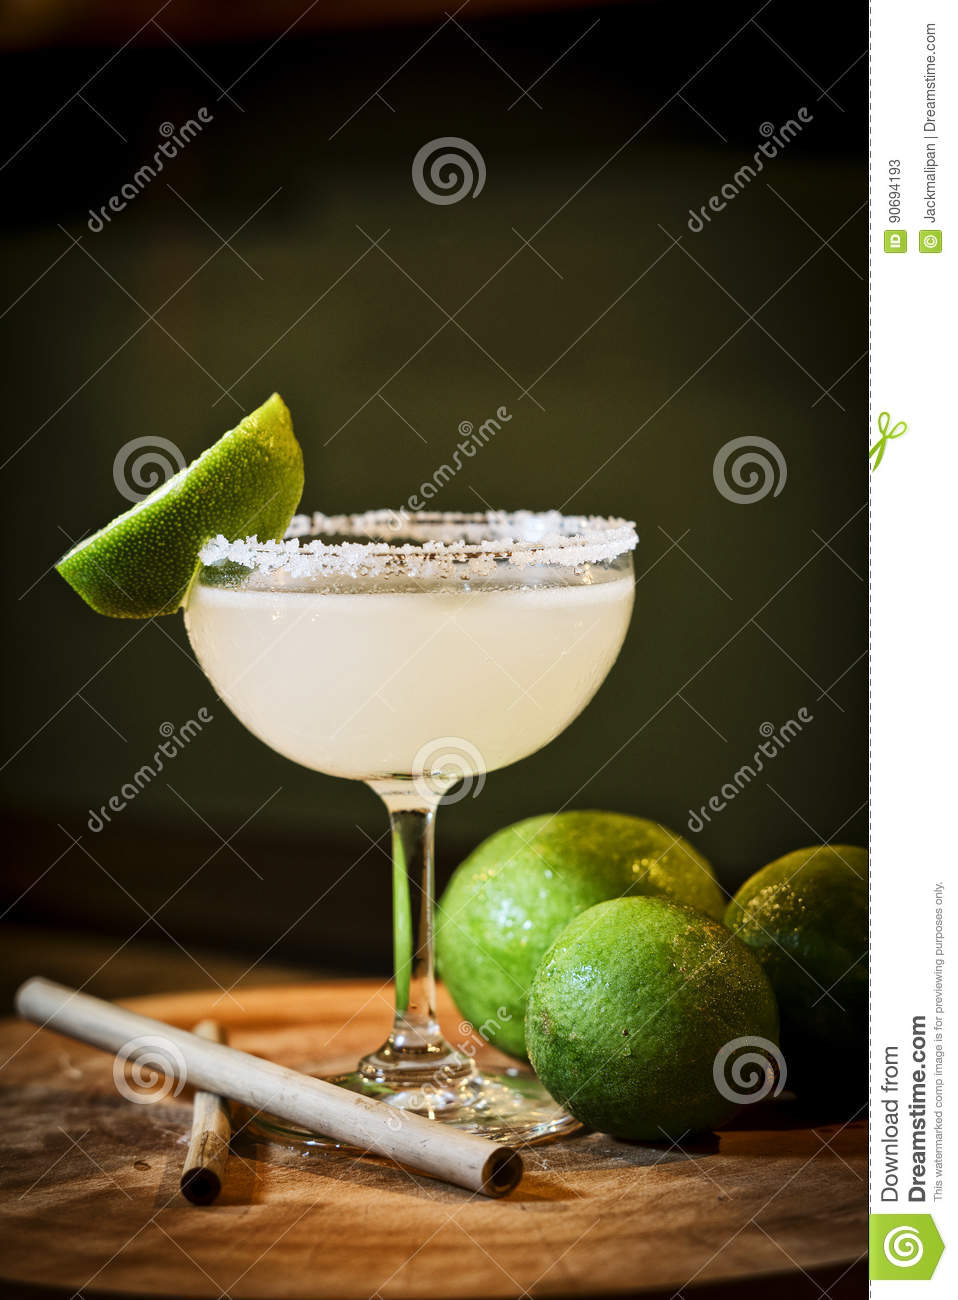 Mexicaanse de cocktaildrank van Margarita van de citroenkalk in bar